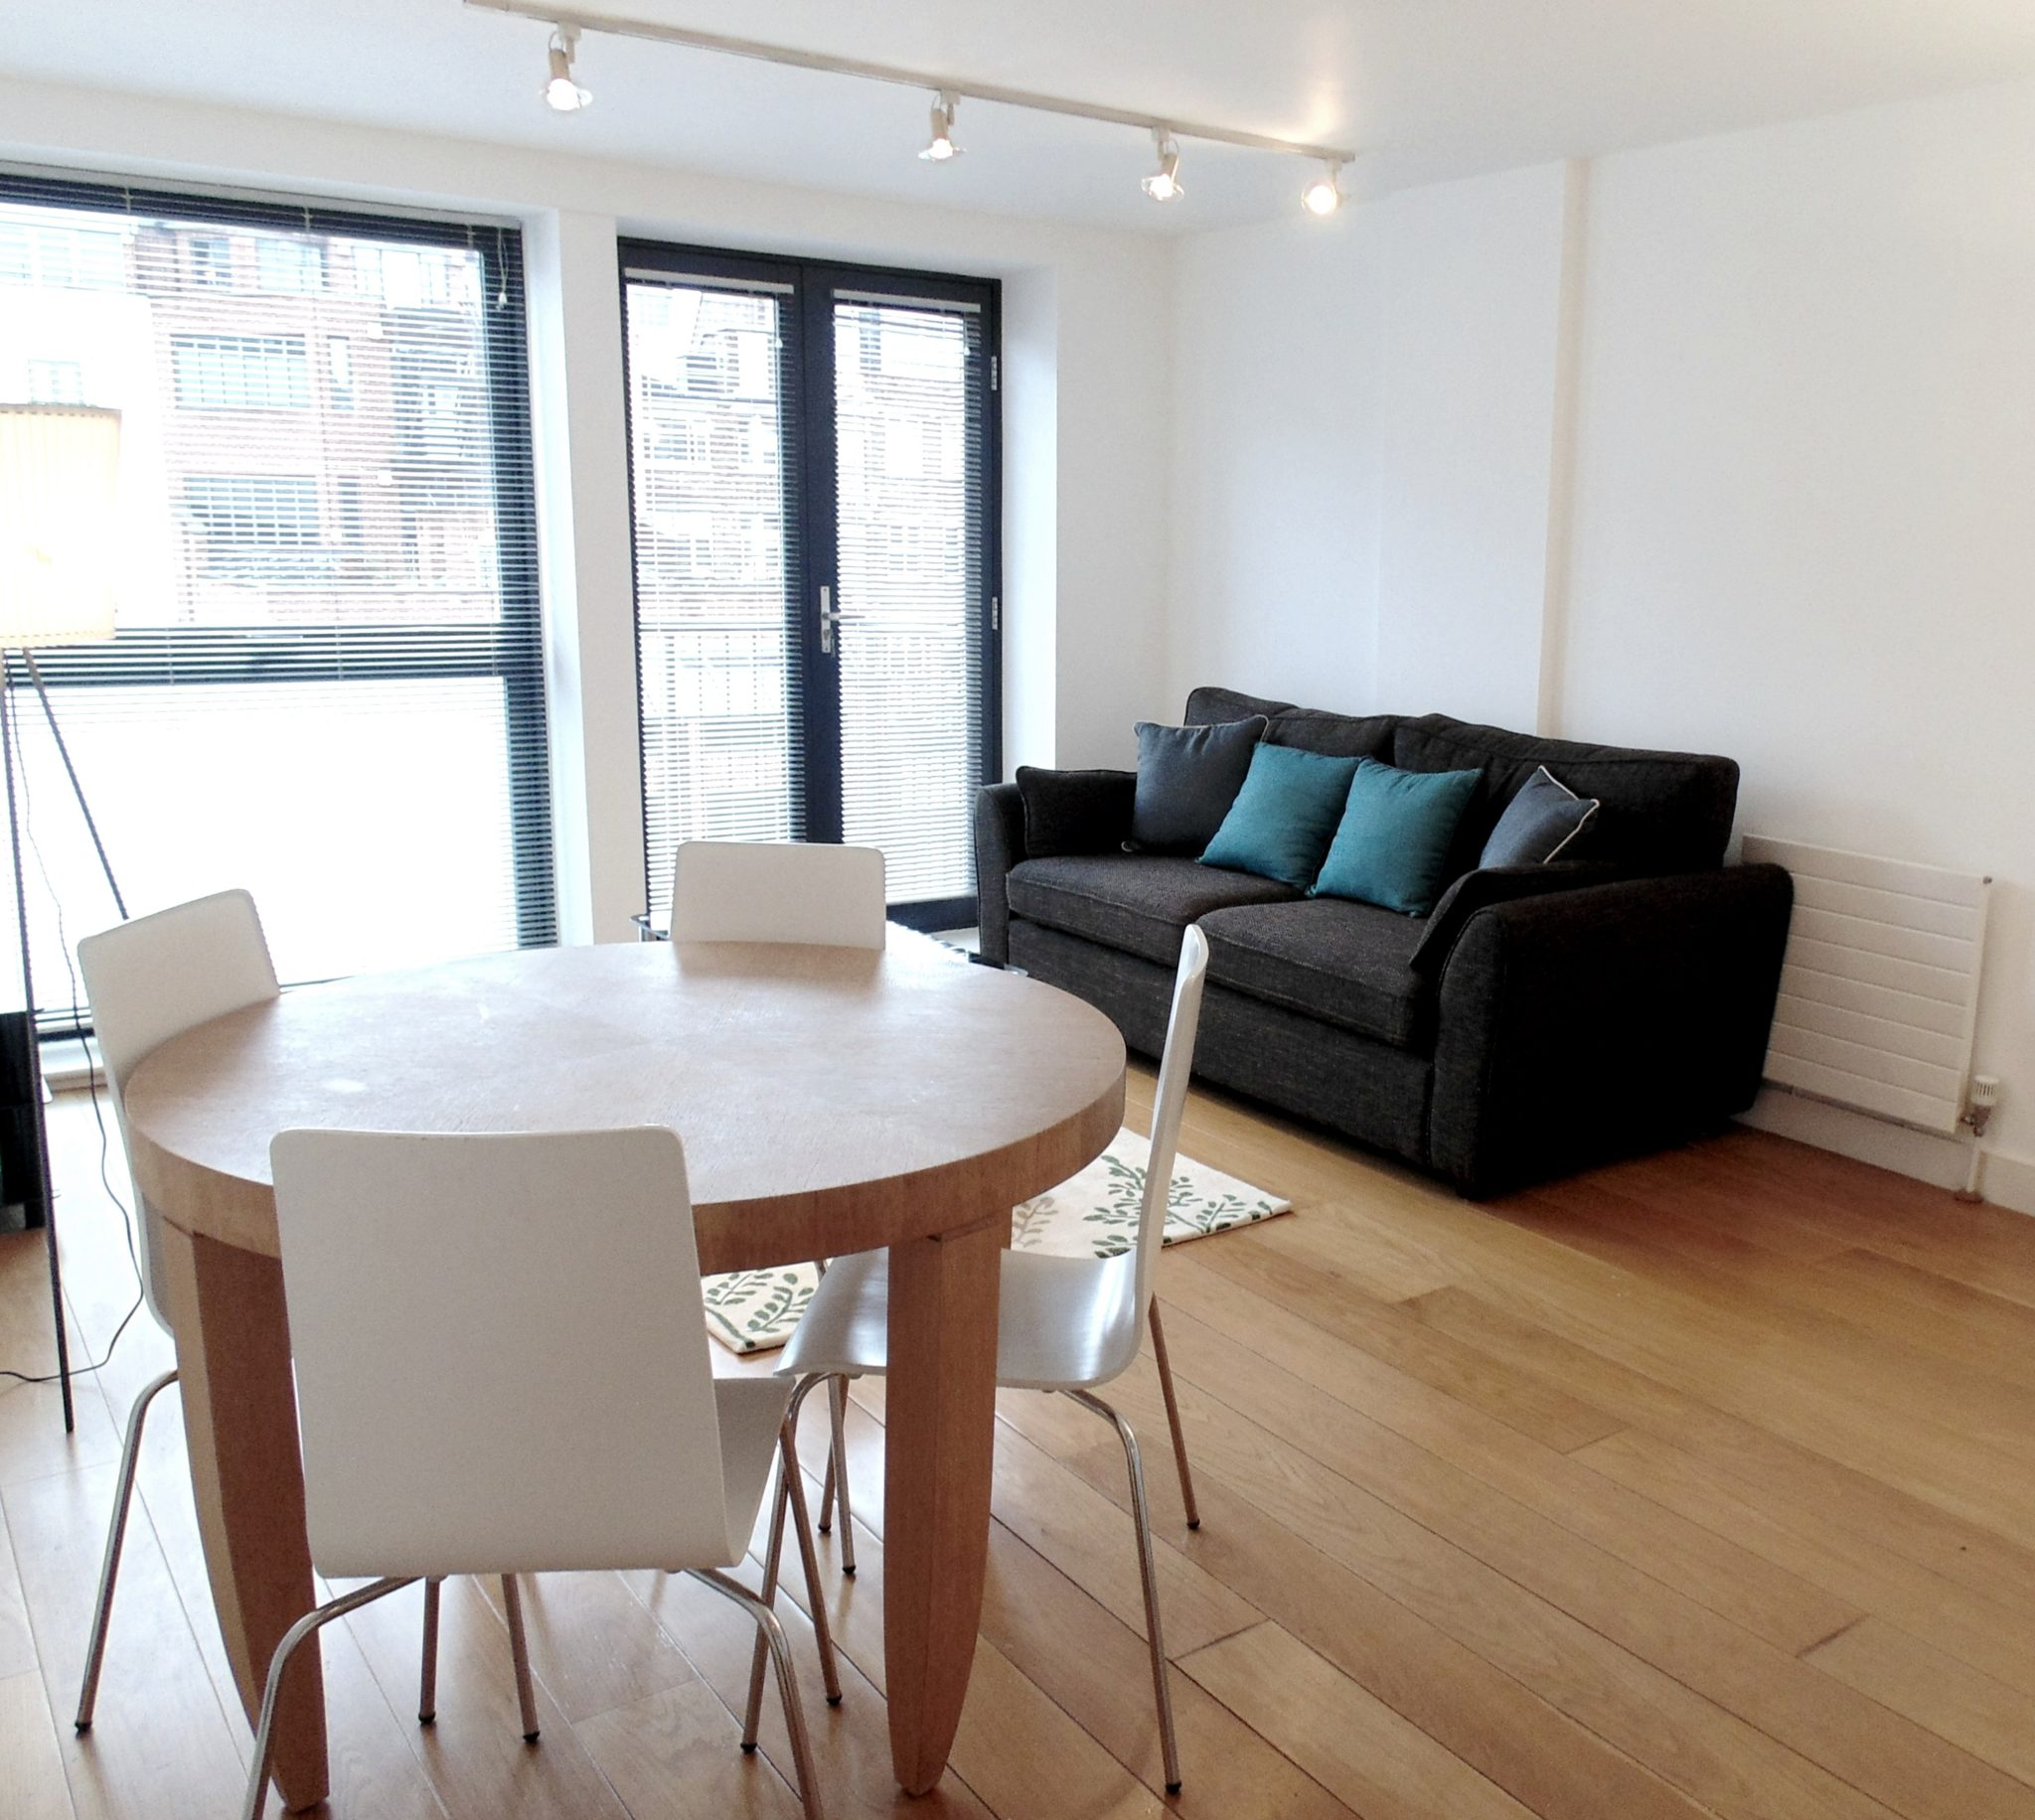 Serviced-Accommodation-Turnmill-St-London|-Stylish-Farringdon-Executive-Apartments-|-WiFi|-Private-Balcony-|-Fully-Equipped-|-Urban-Stay